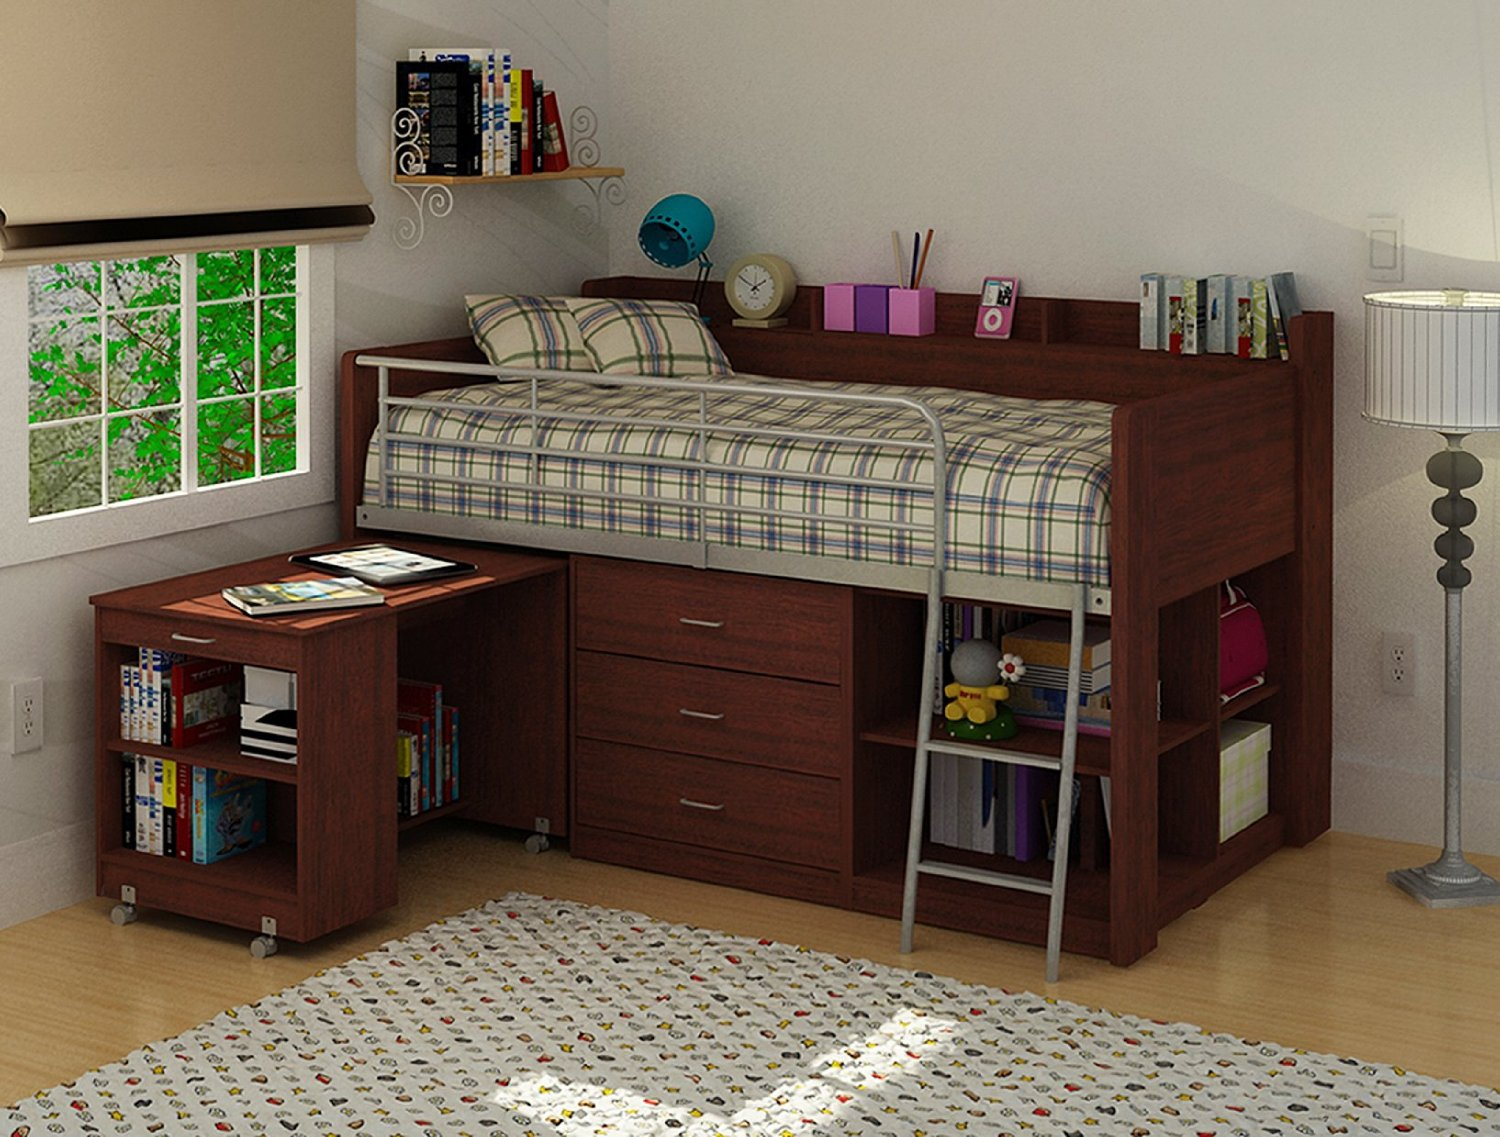 Dark Brown Finished Wood Loft Bed Idea With Built In Desk Drawer System Bookshelf And Metal